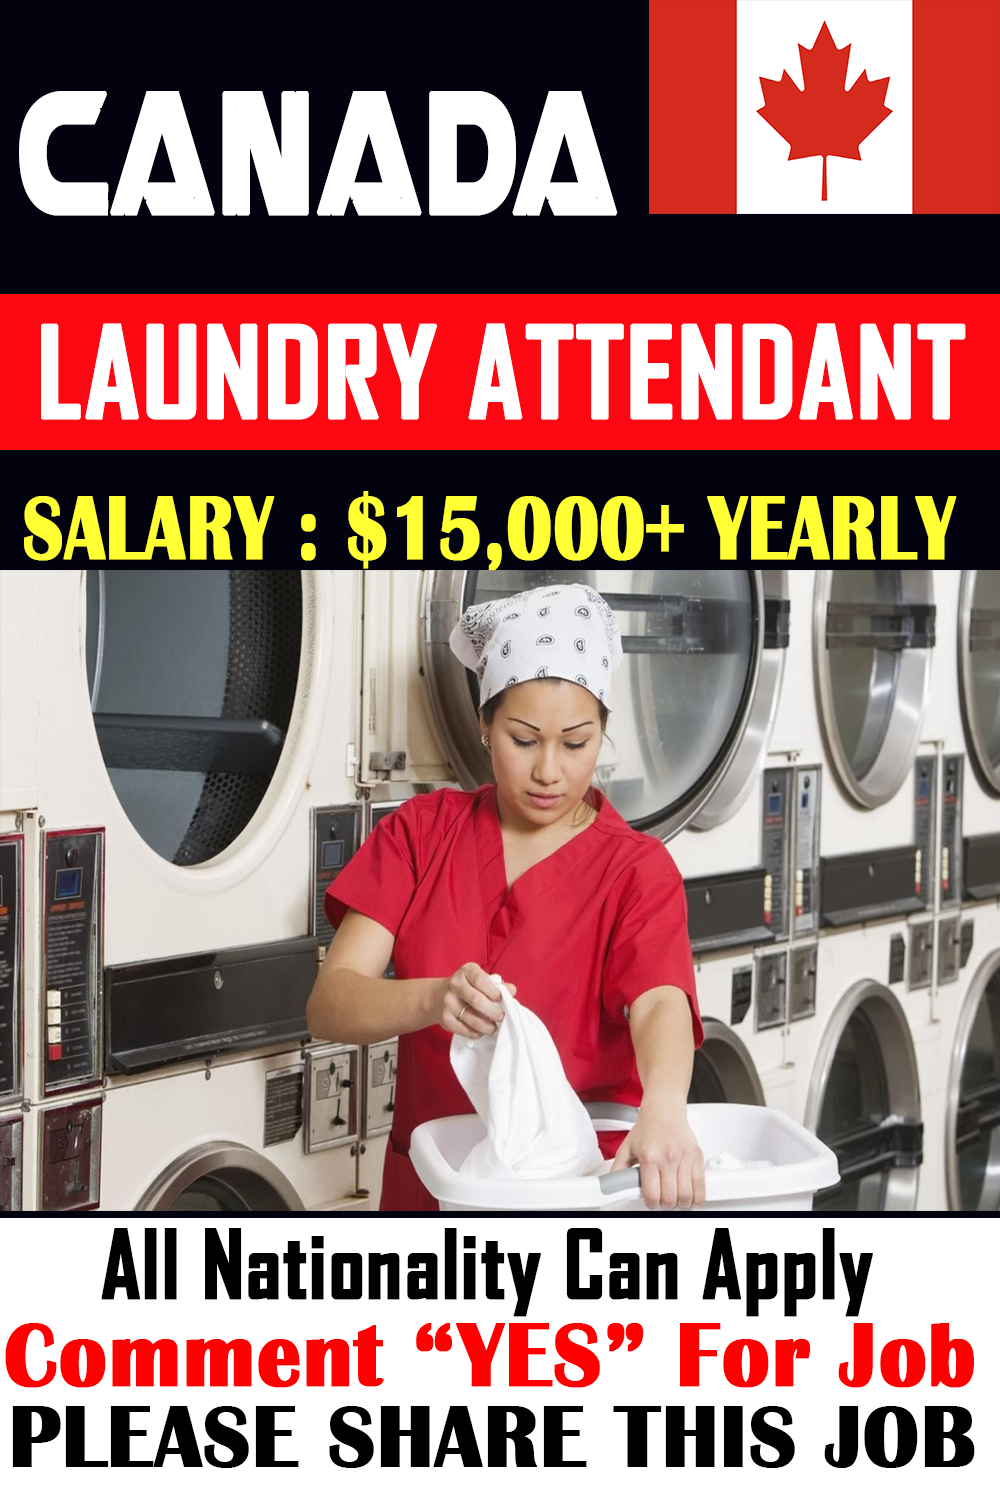 Laundry Attendant Jobs In Canada